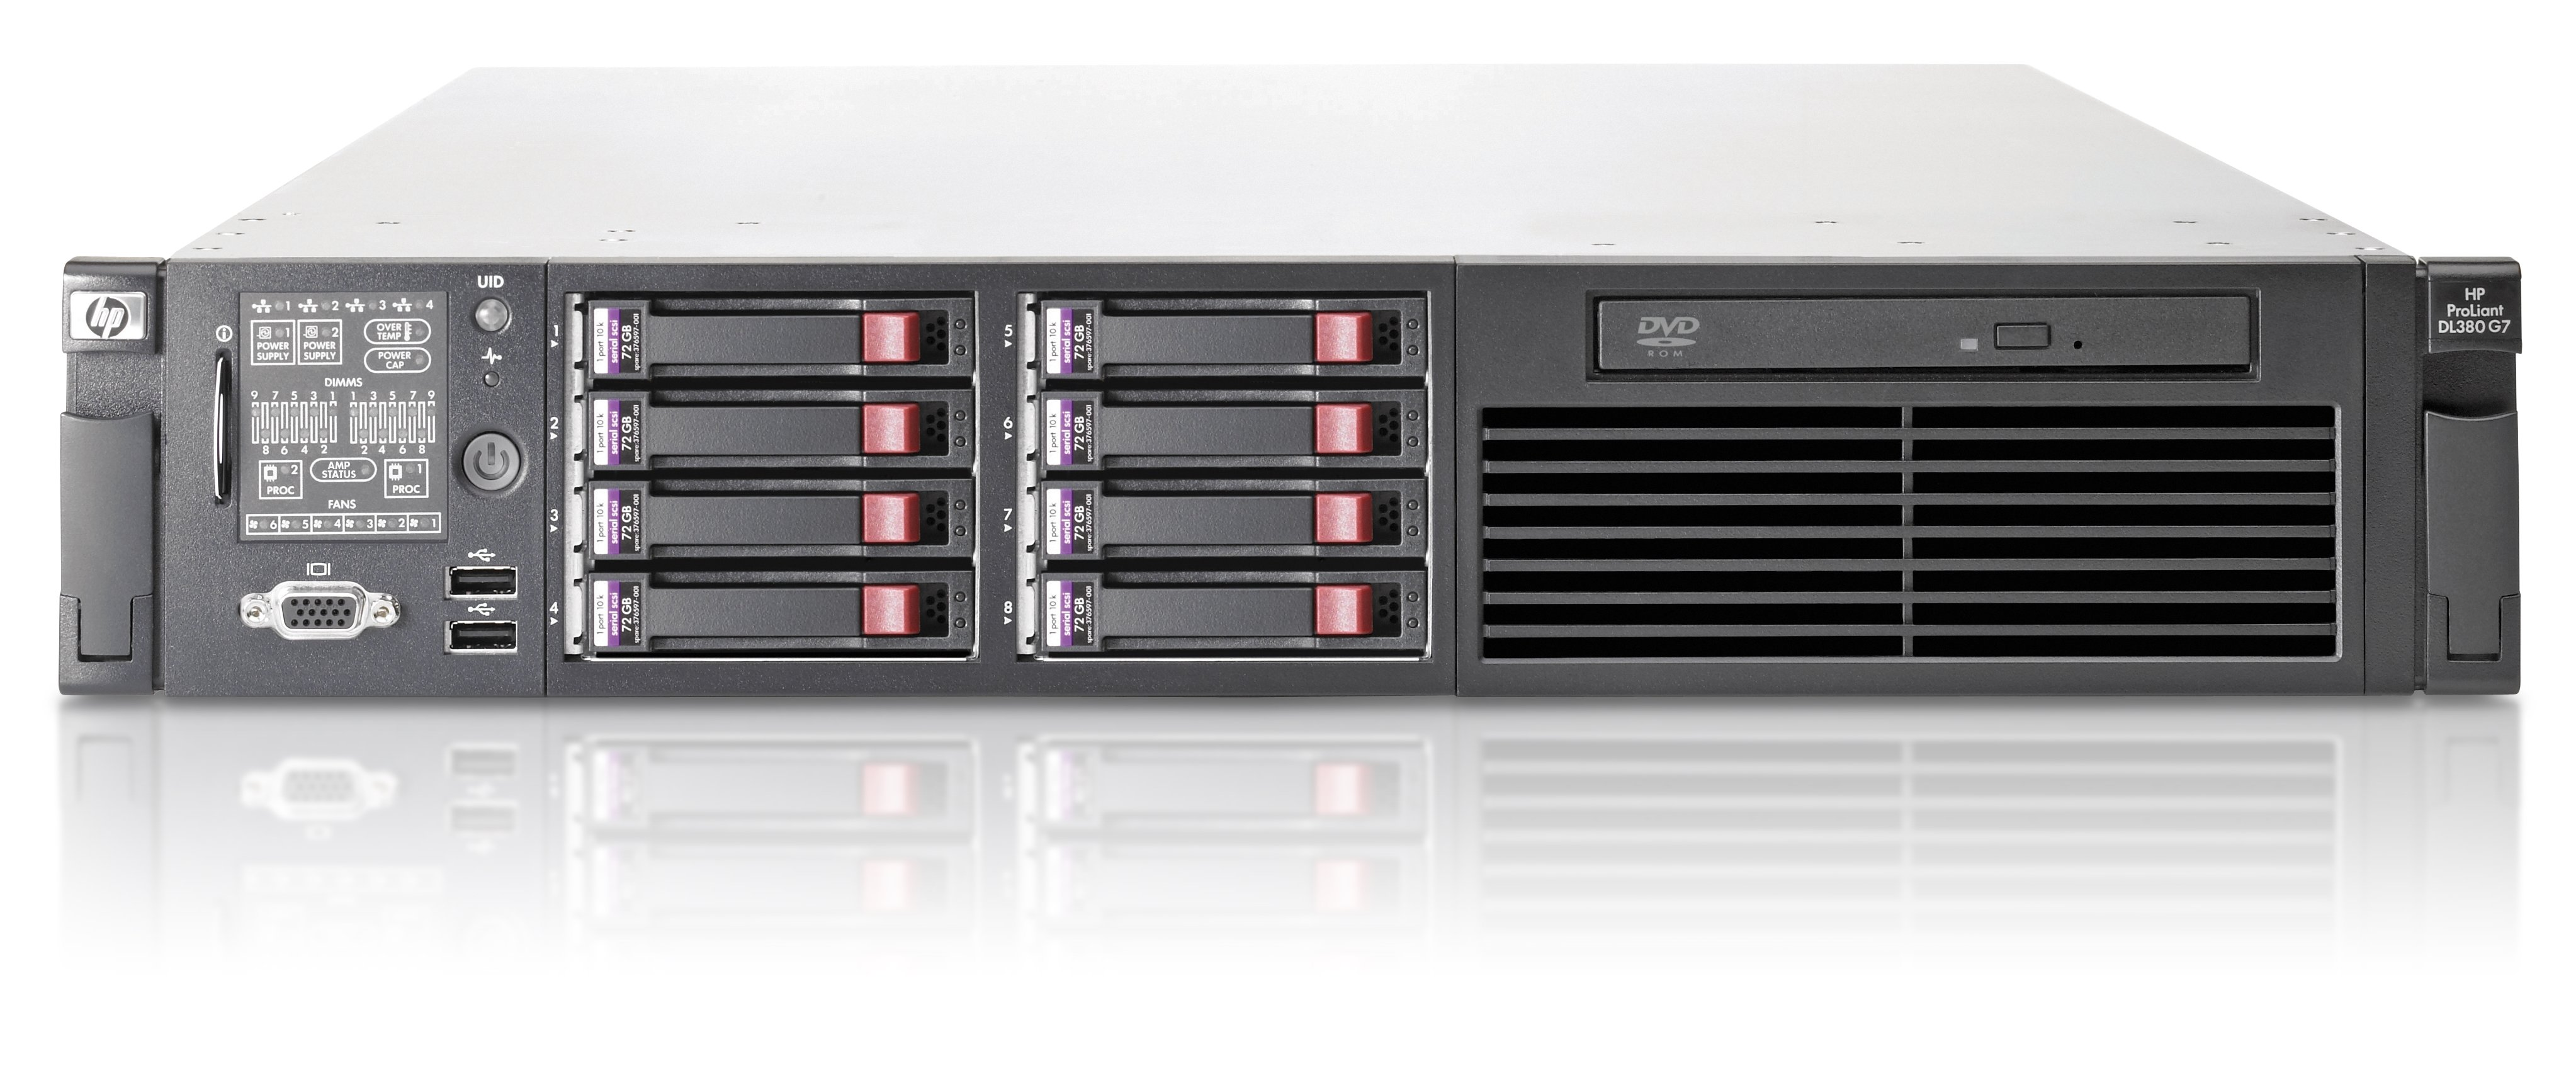 HPE Hewlett Packard Enterprise ProLiant DL380 G7 server 2 4 GHz Intel®  Xeon® 5000 Sequence E5645 Rack